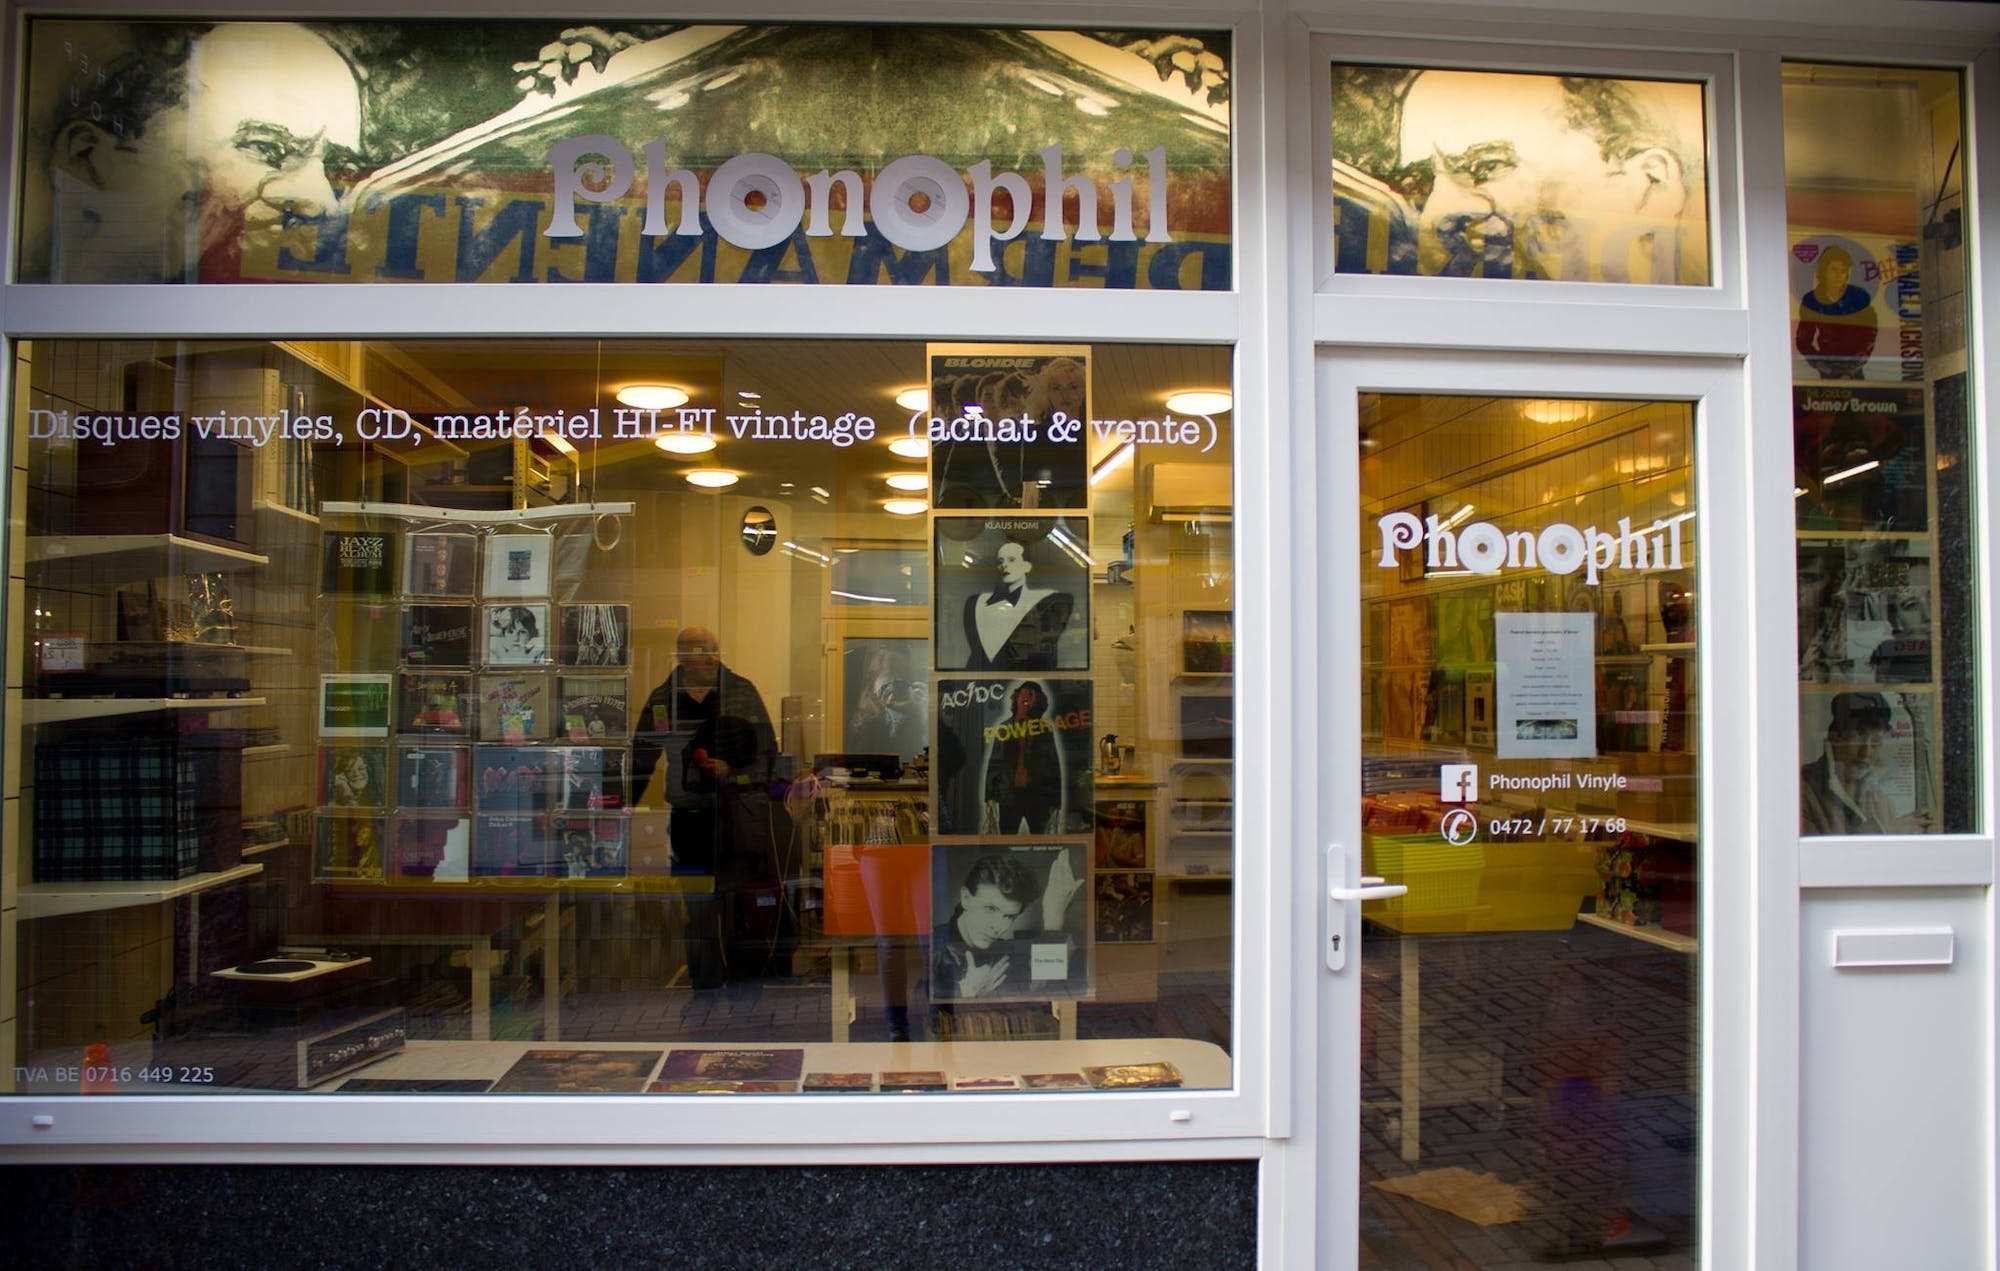 Phonophil Vinyle - Record Store Image